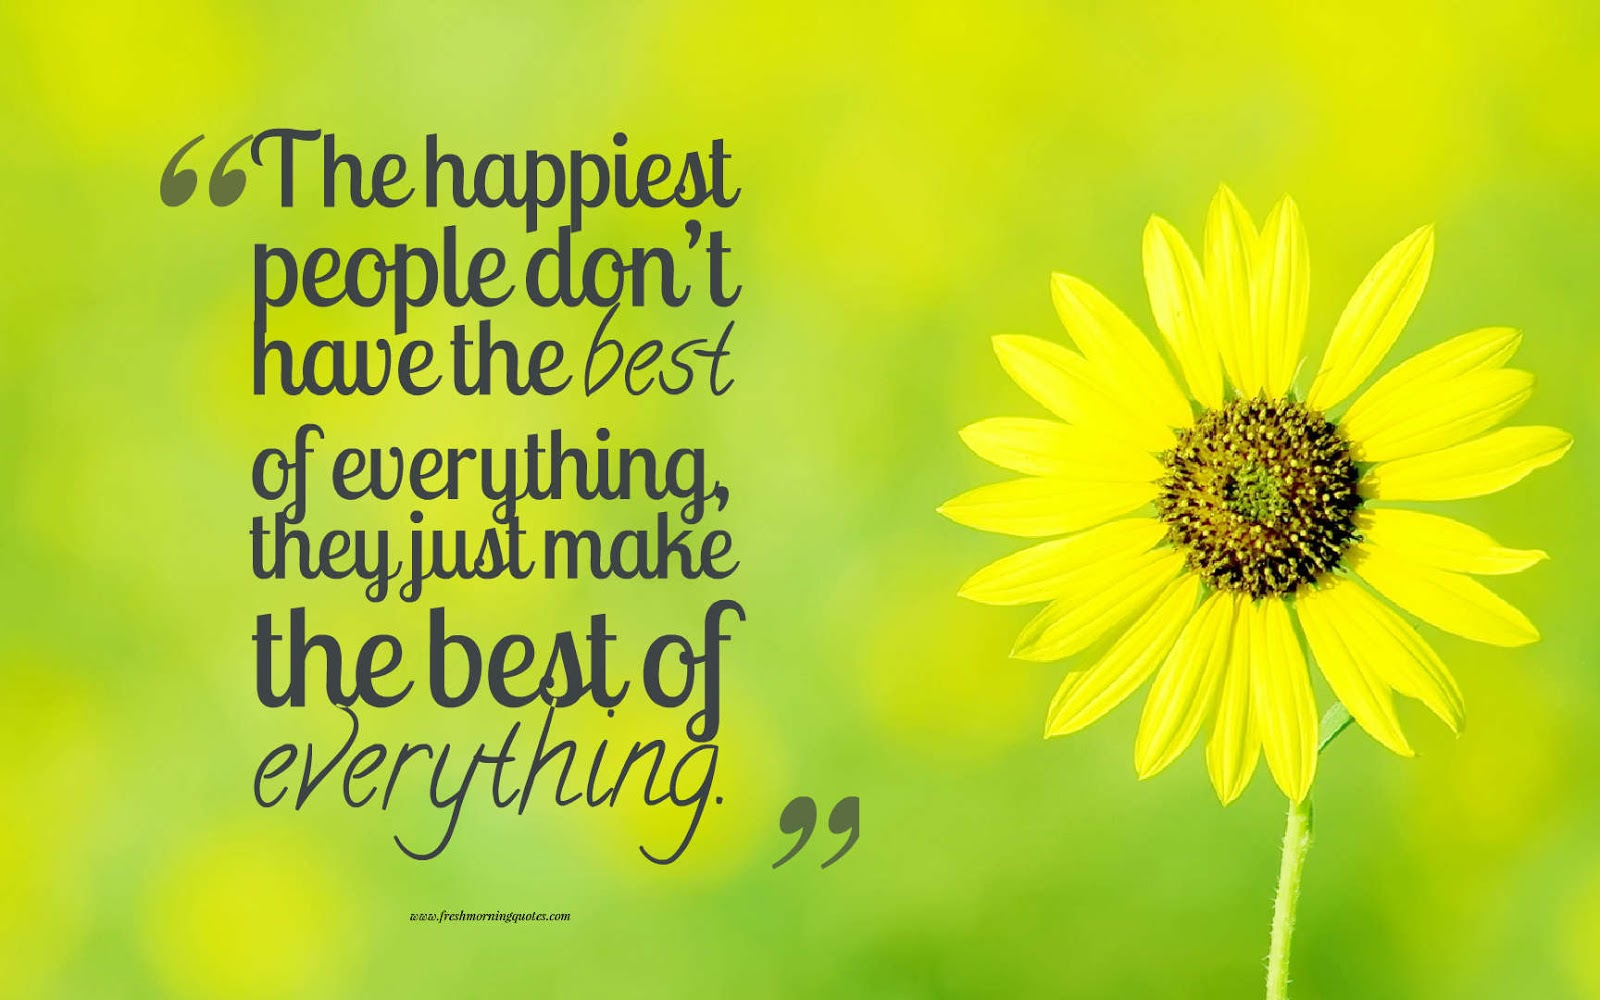 The happiest people positive morning quotes